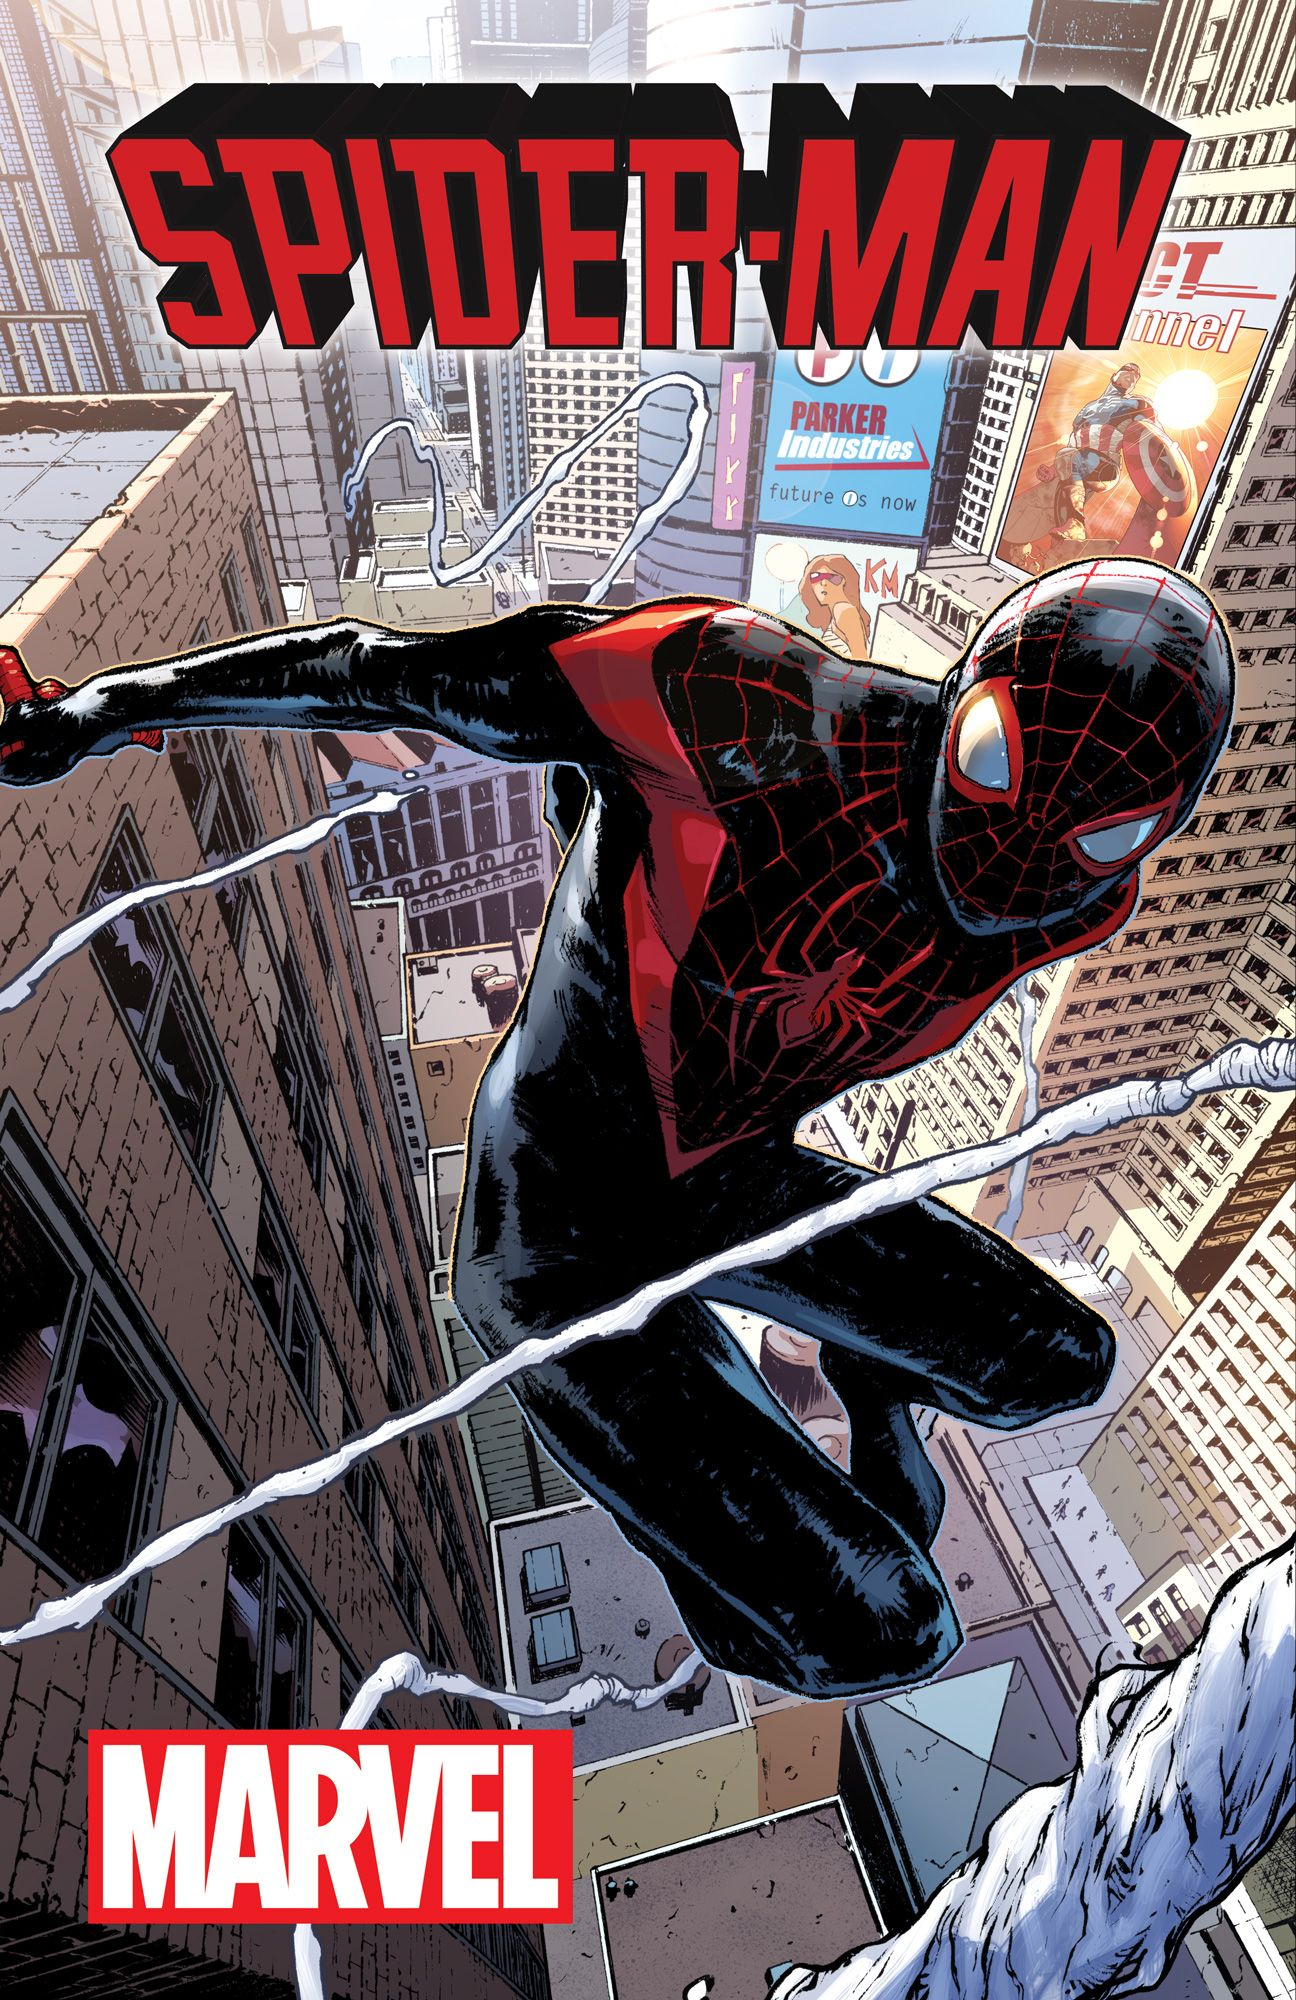 New Spider-Man Series Announced Starring Miles Morales